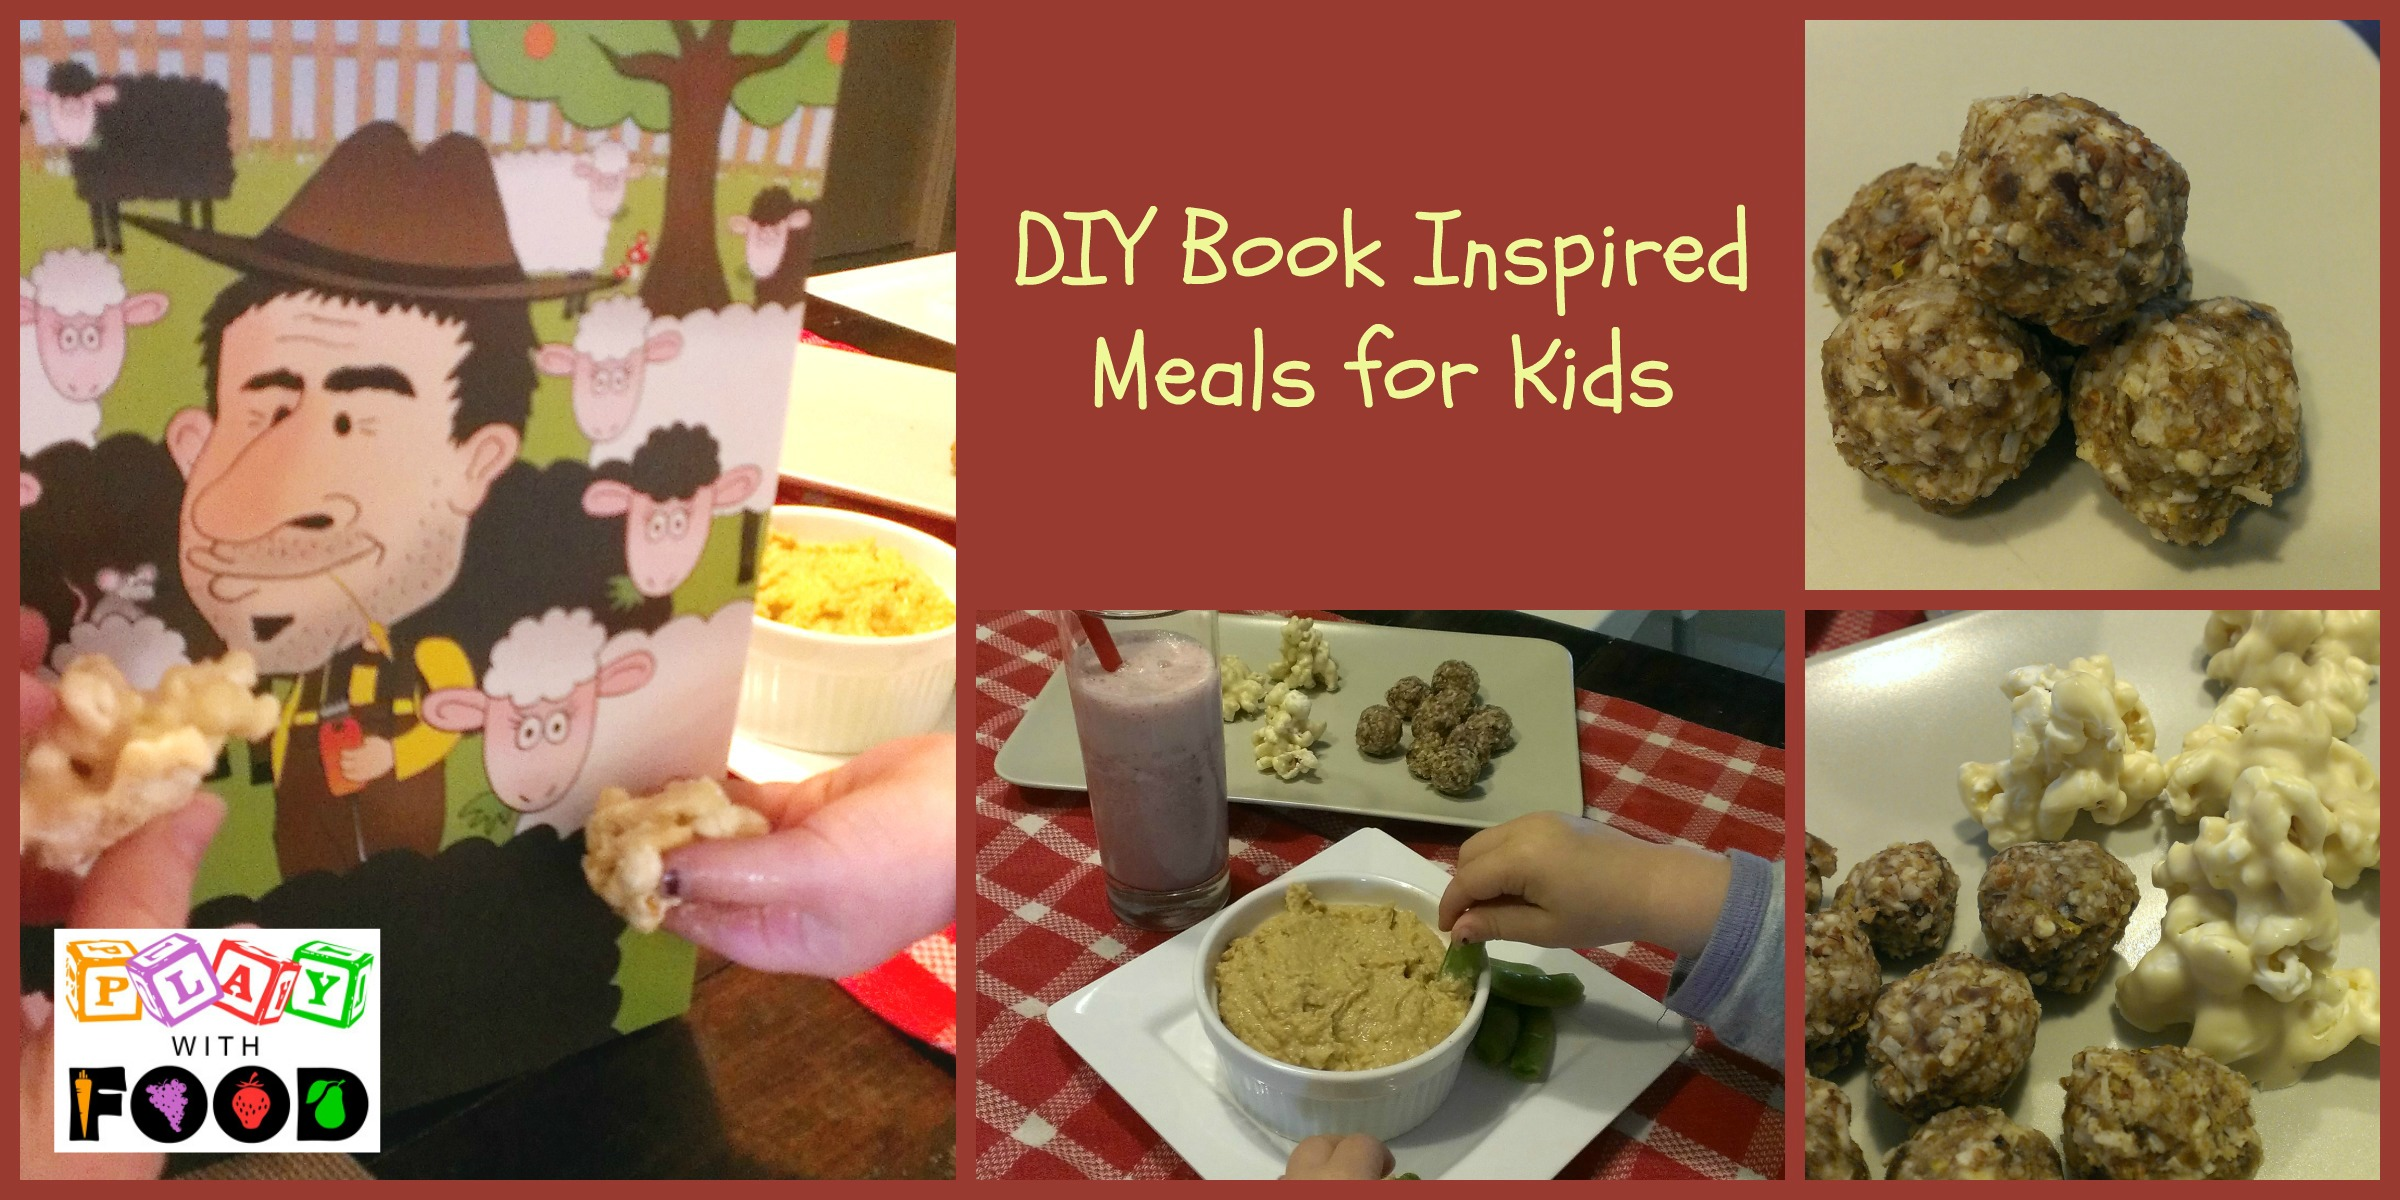 DIY Book Inspired Meals for Kids